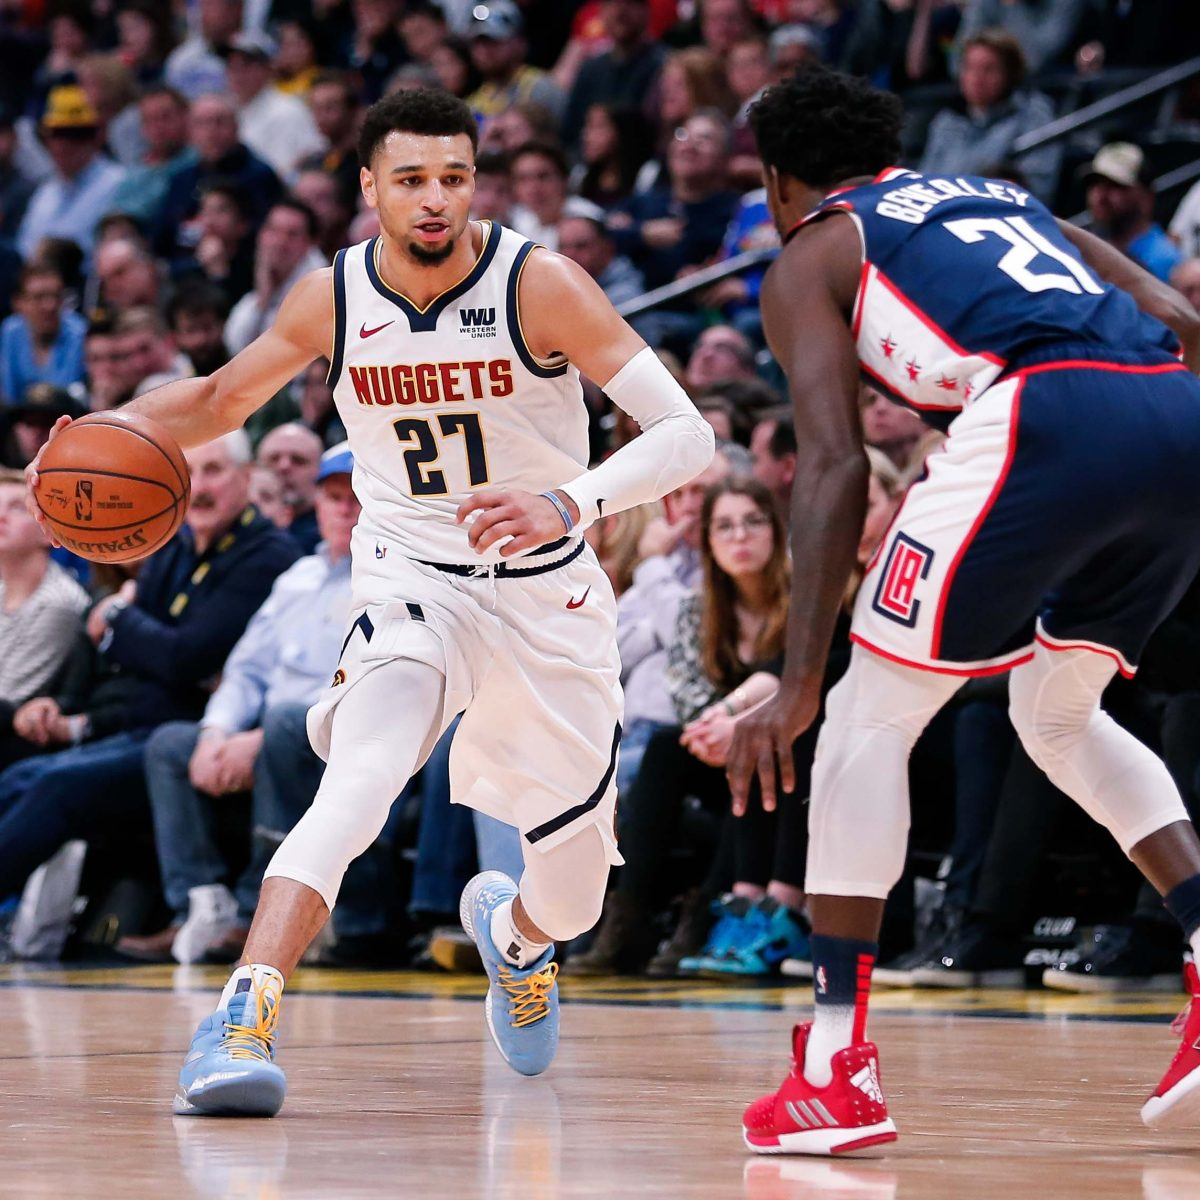 Nba Picks Nuggets And Lakers Game 7 Odds And Betting: Oklahoma City Thunder Vs. Denver Nuggets Prediction